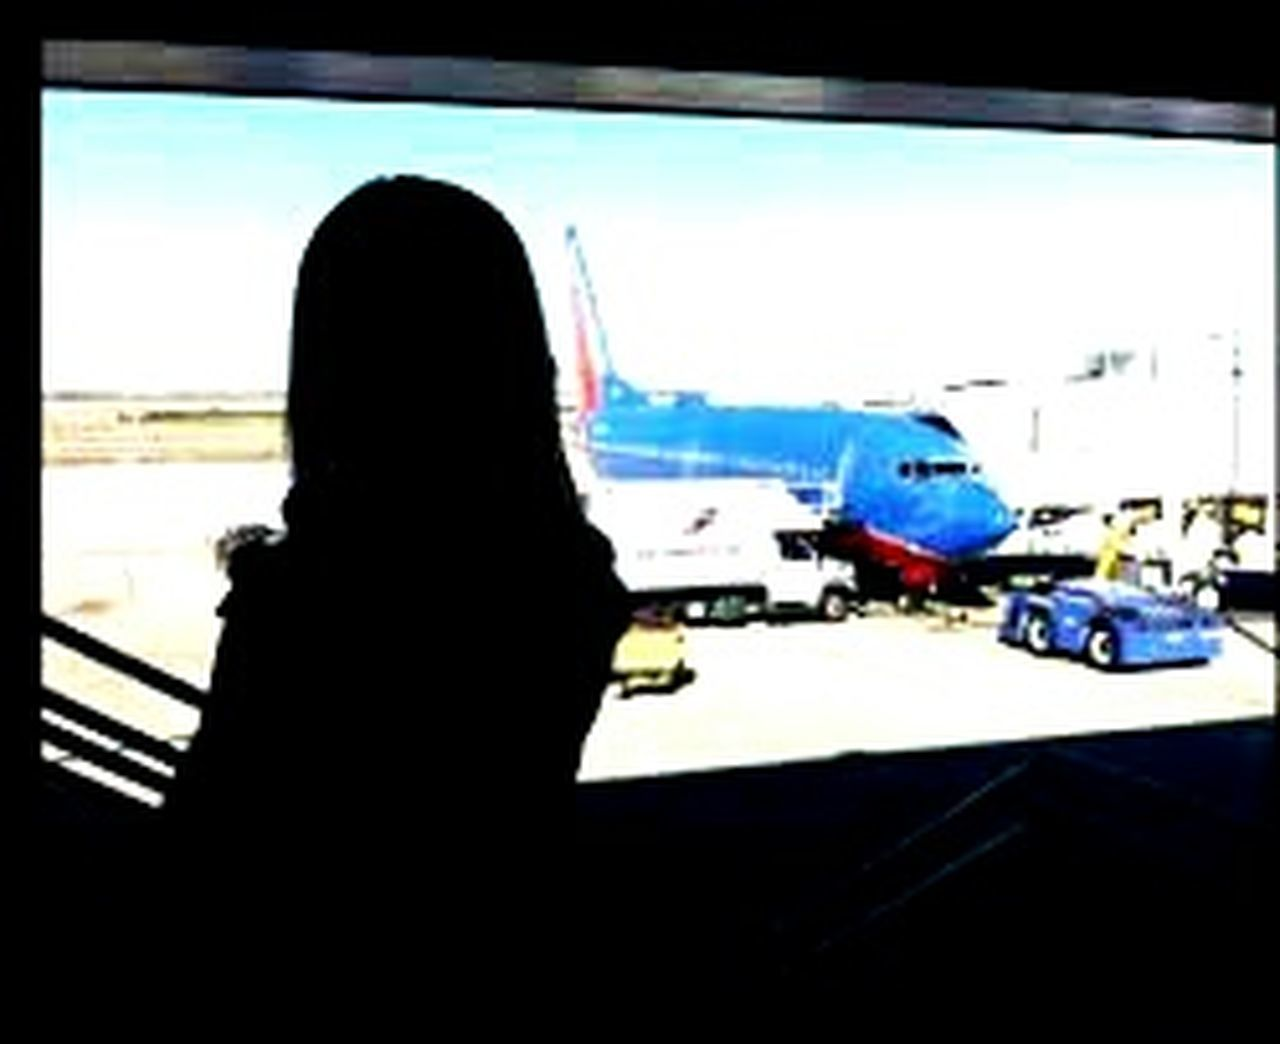 silhouette, indoors, transportation, airport, adult, one person, one woman only, working, adults only, people, day, city, only women, sky